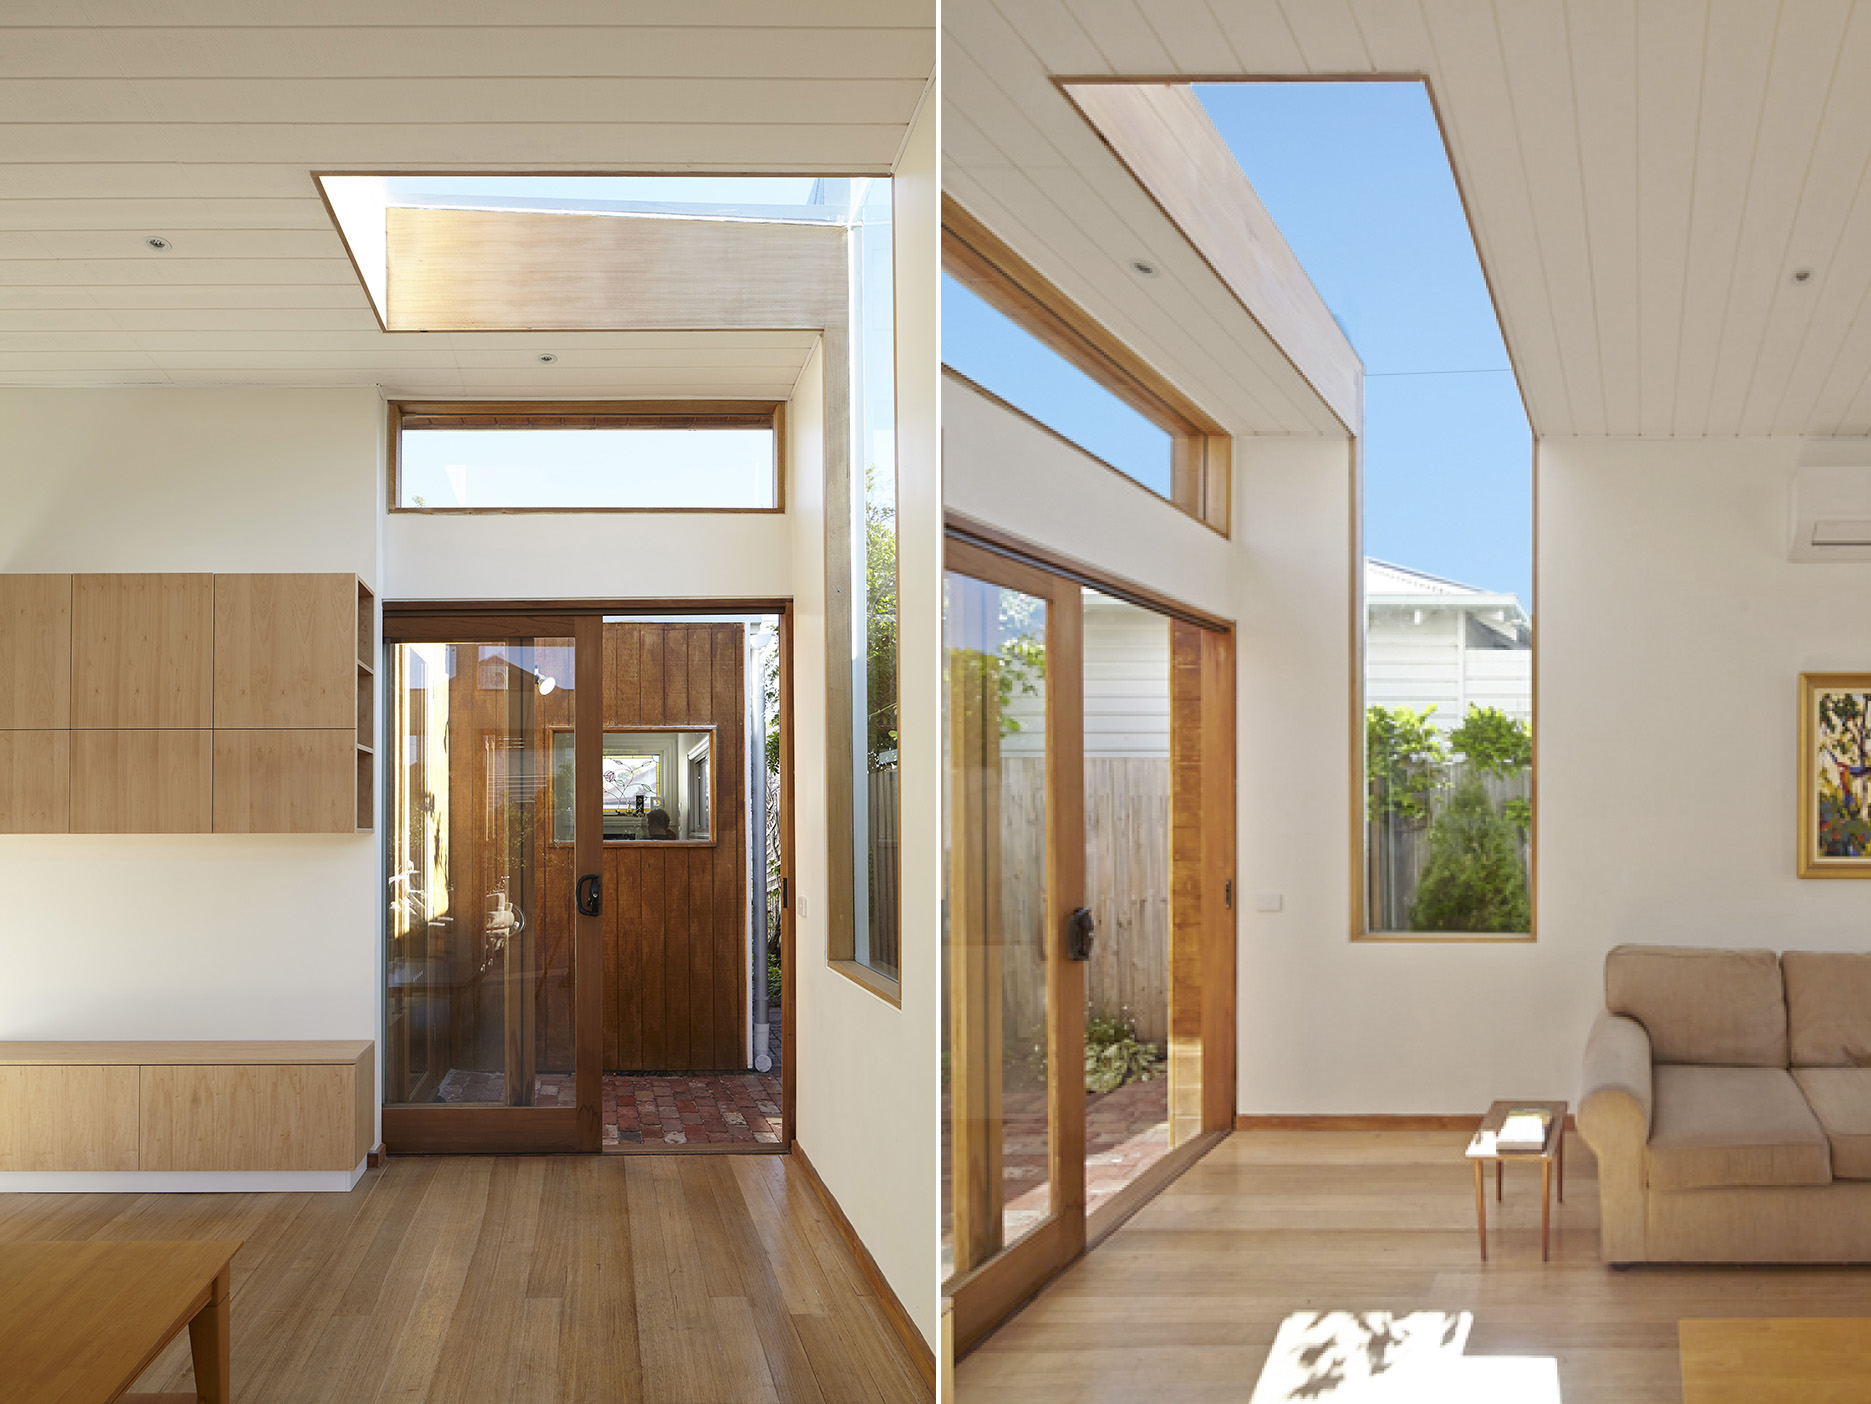 Newport Melbourne Architect Architecture Extension Megowan Rooflight